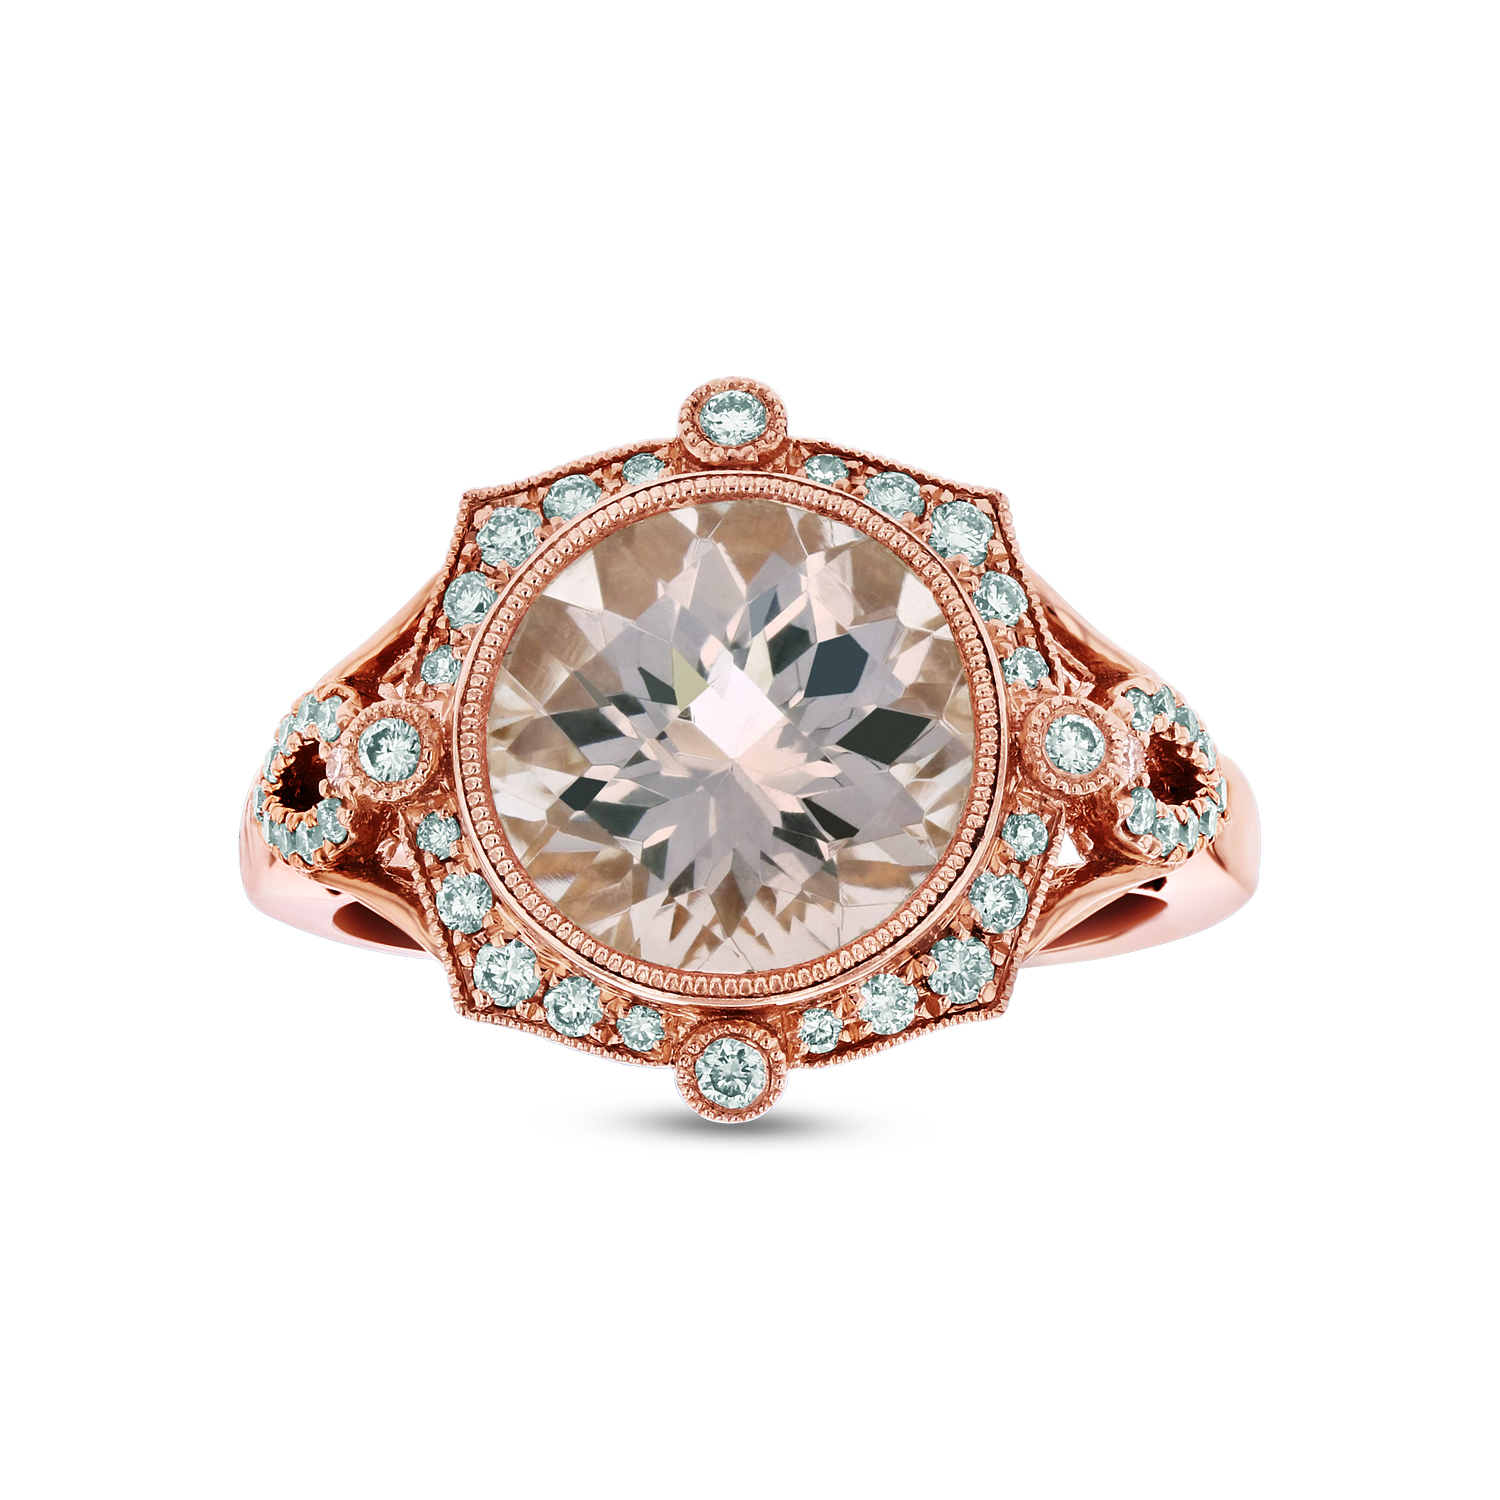 View Diamond and Morganite Ring in 14k Rose Gold